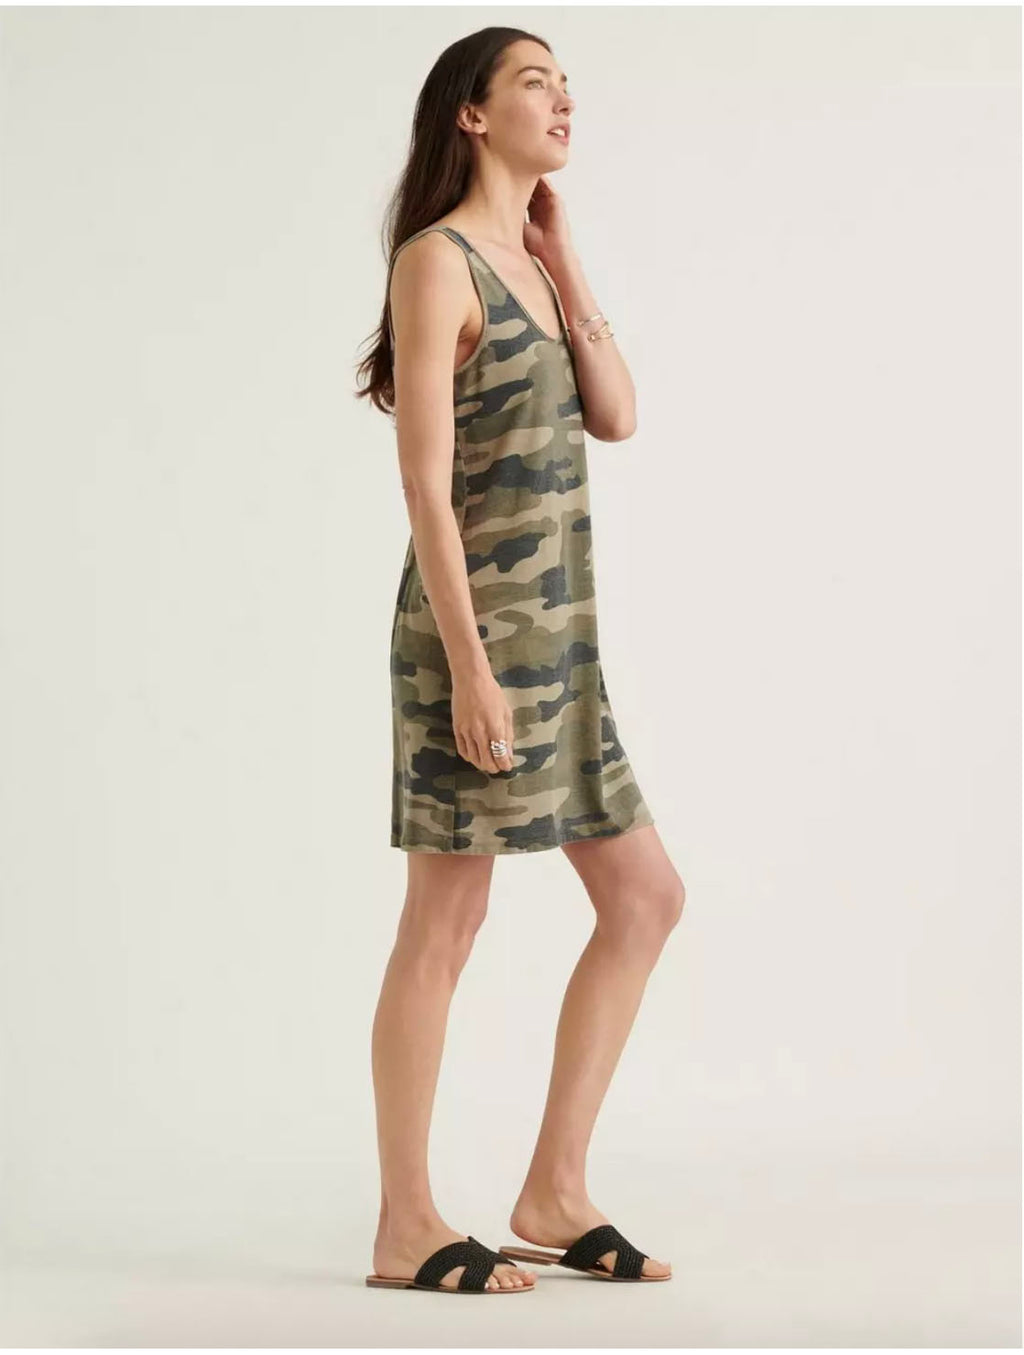 Lucky Brand Tank Dress in Green Camo